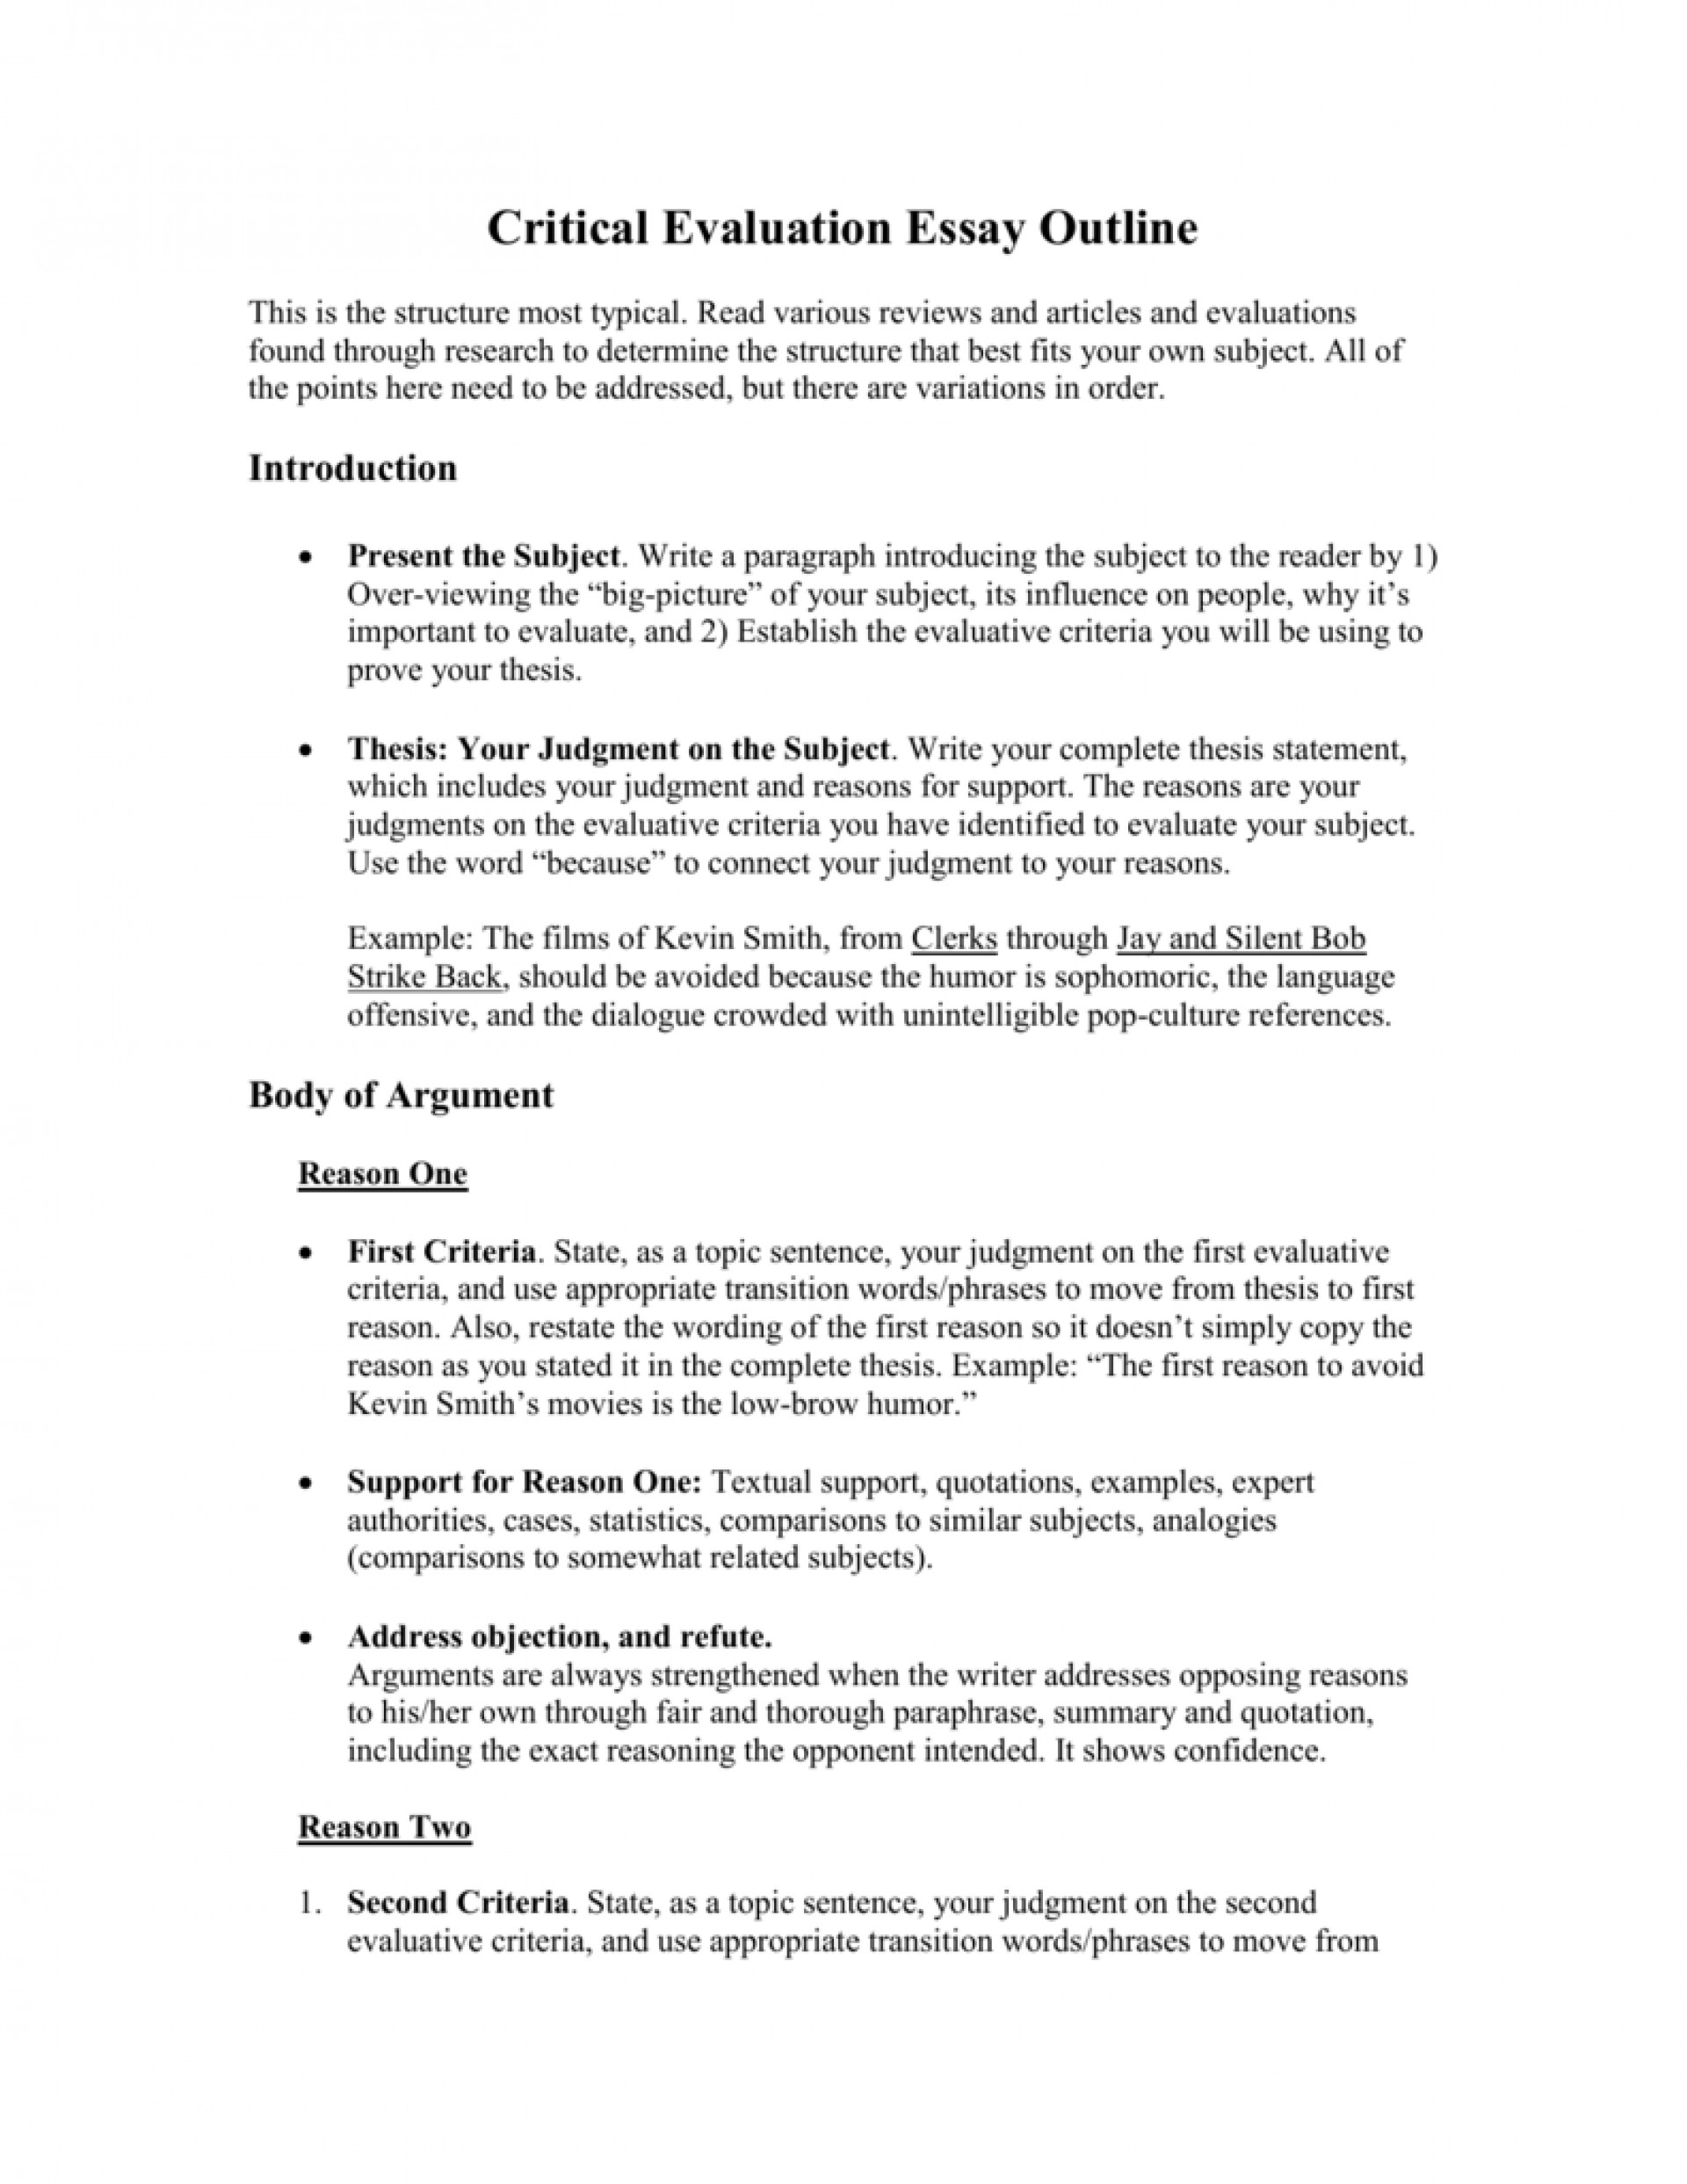 007 Essay Example What Is An Outline 007278317 1 Stunning A Hero Argumentative Format What's Look Like 1920